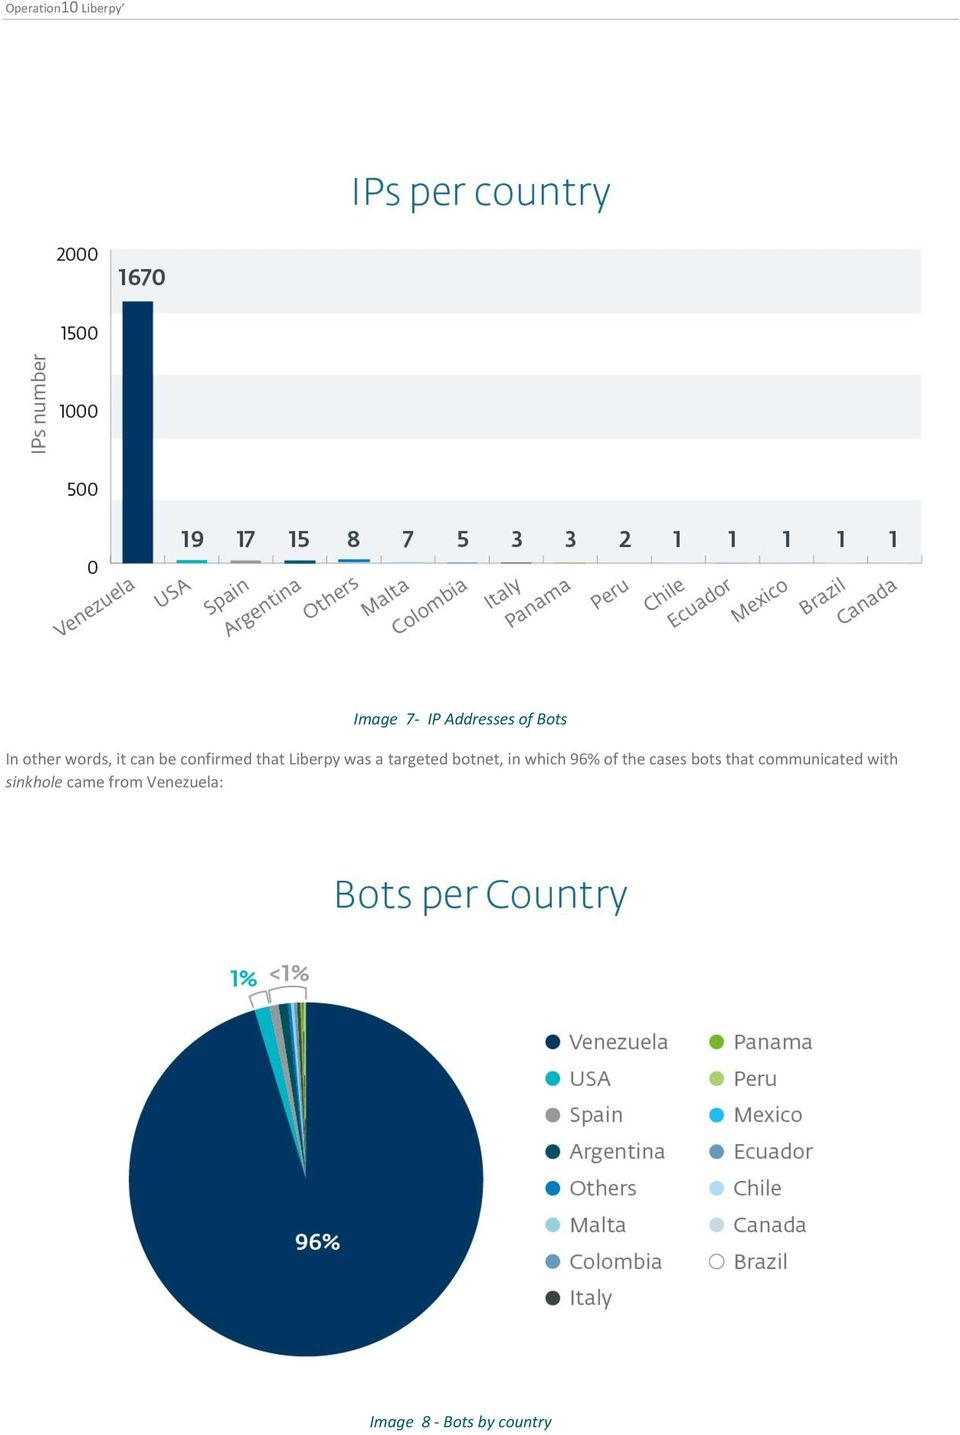 targeted botnet, in which 96% of the cases bots that